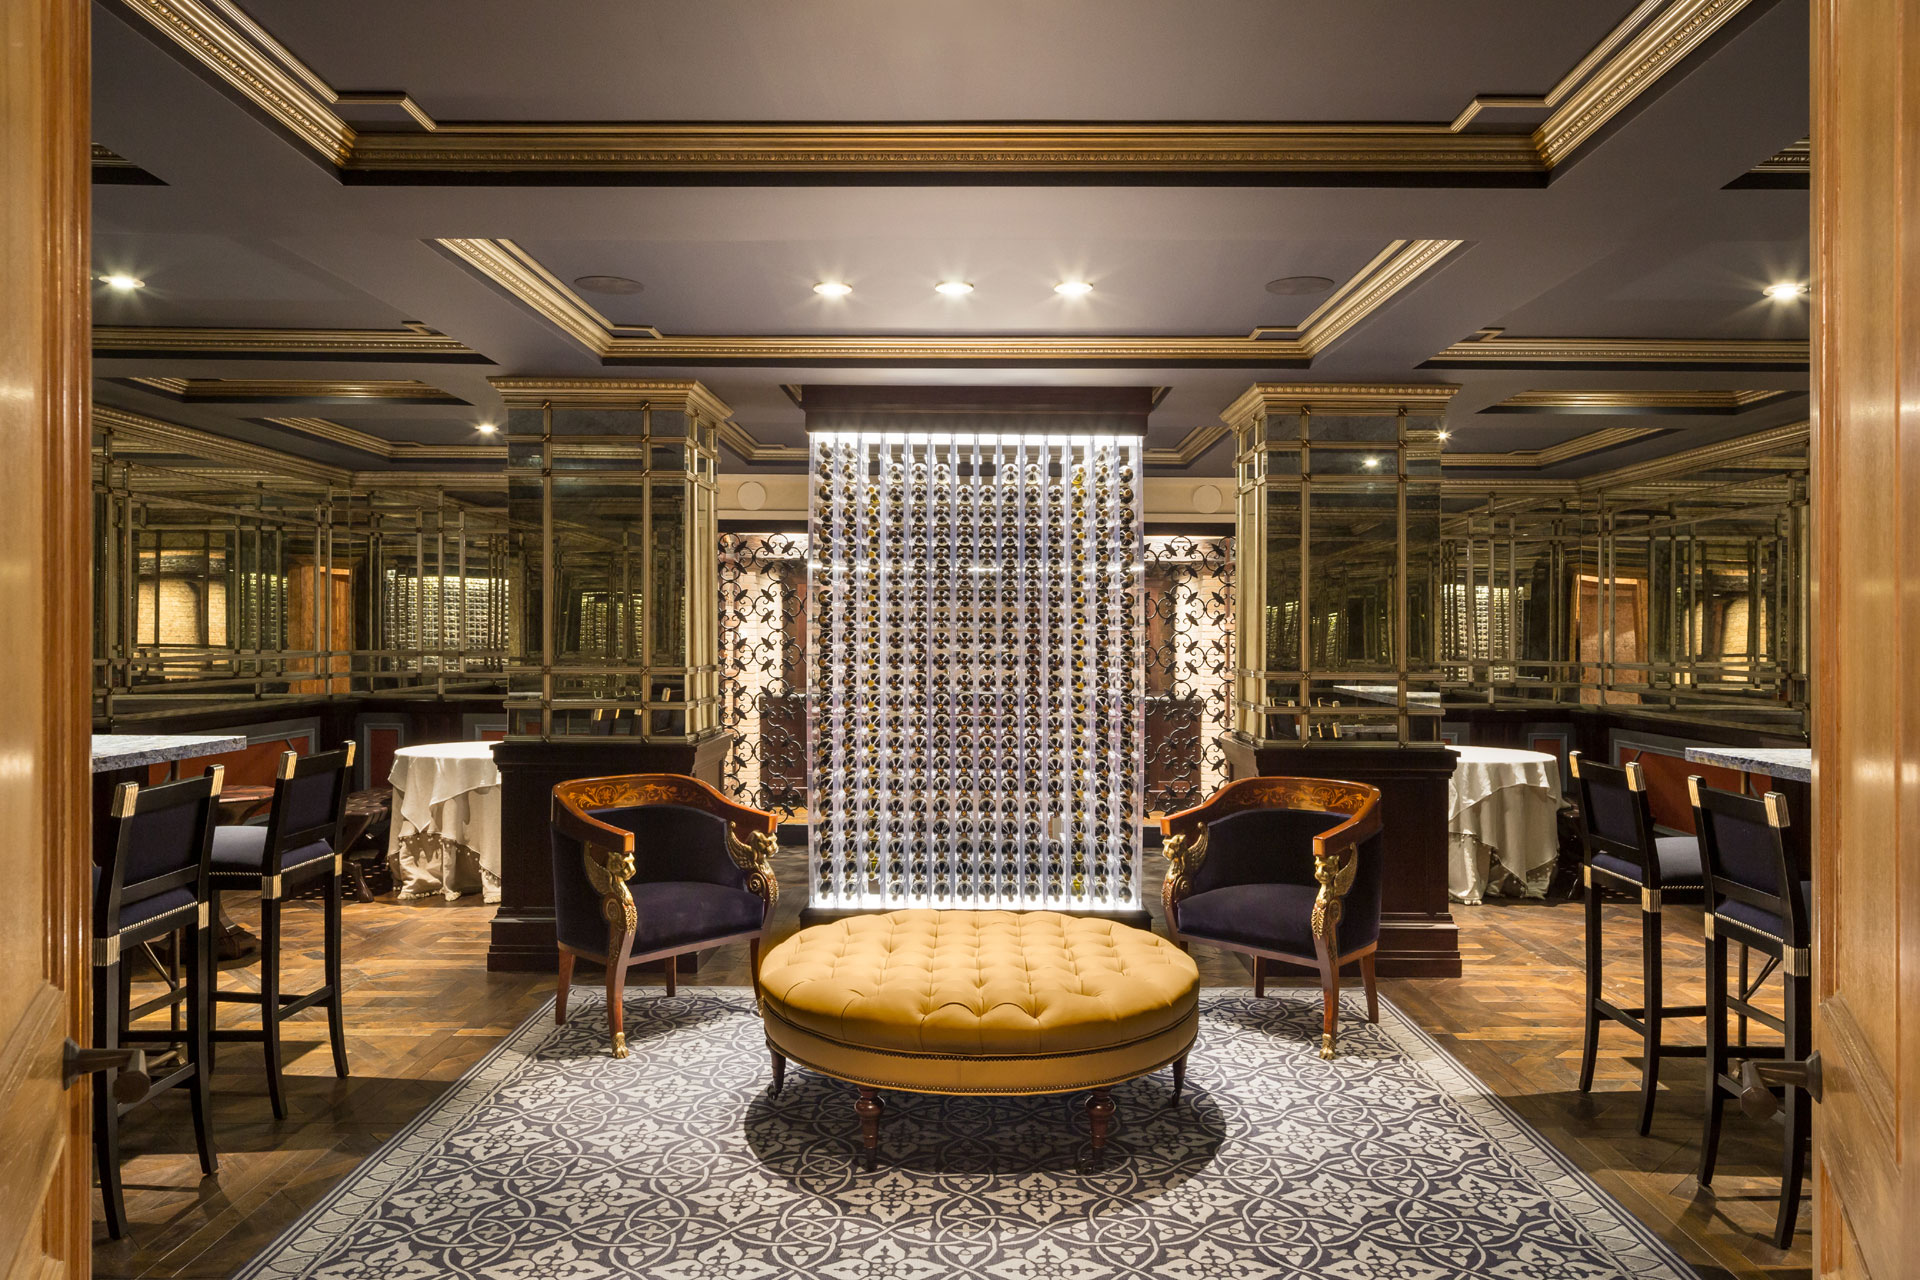 Darlington's lavish 21st-century updates include the wine room, which connects to a wine cellar and a private-club-style recreation area with cigar room (complete with humidors), a poker room, a billiard room, a home theater, a spa and beauty salon, and a restaurant-style kitchen.